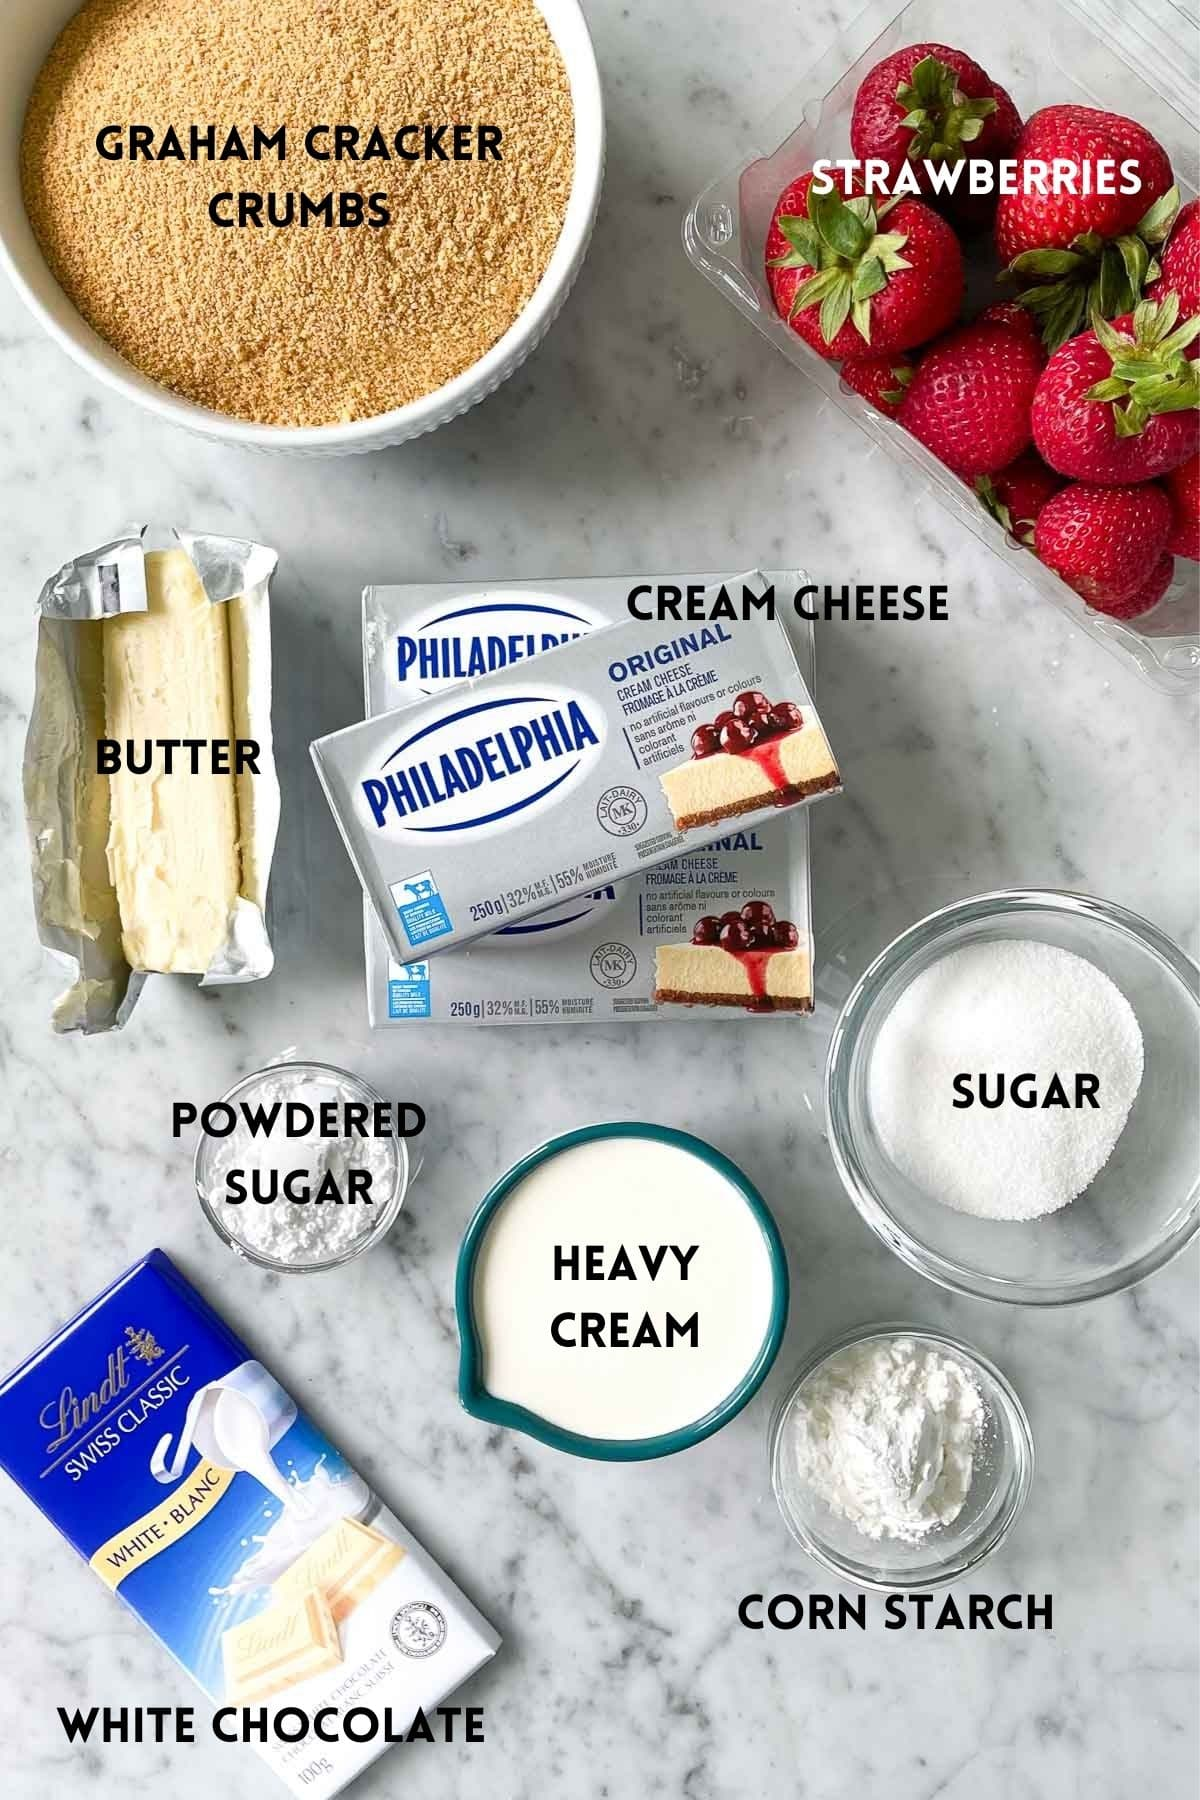 Ingredients for a No-Bake Strawberry Cheesecake